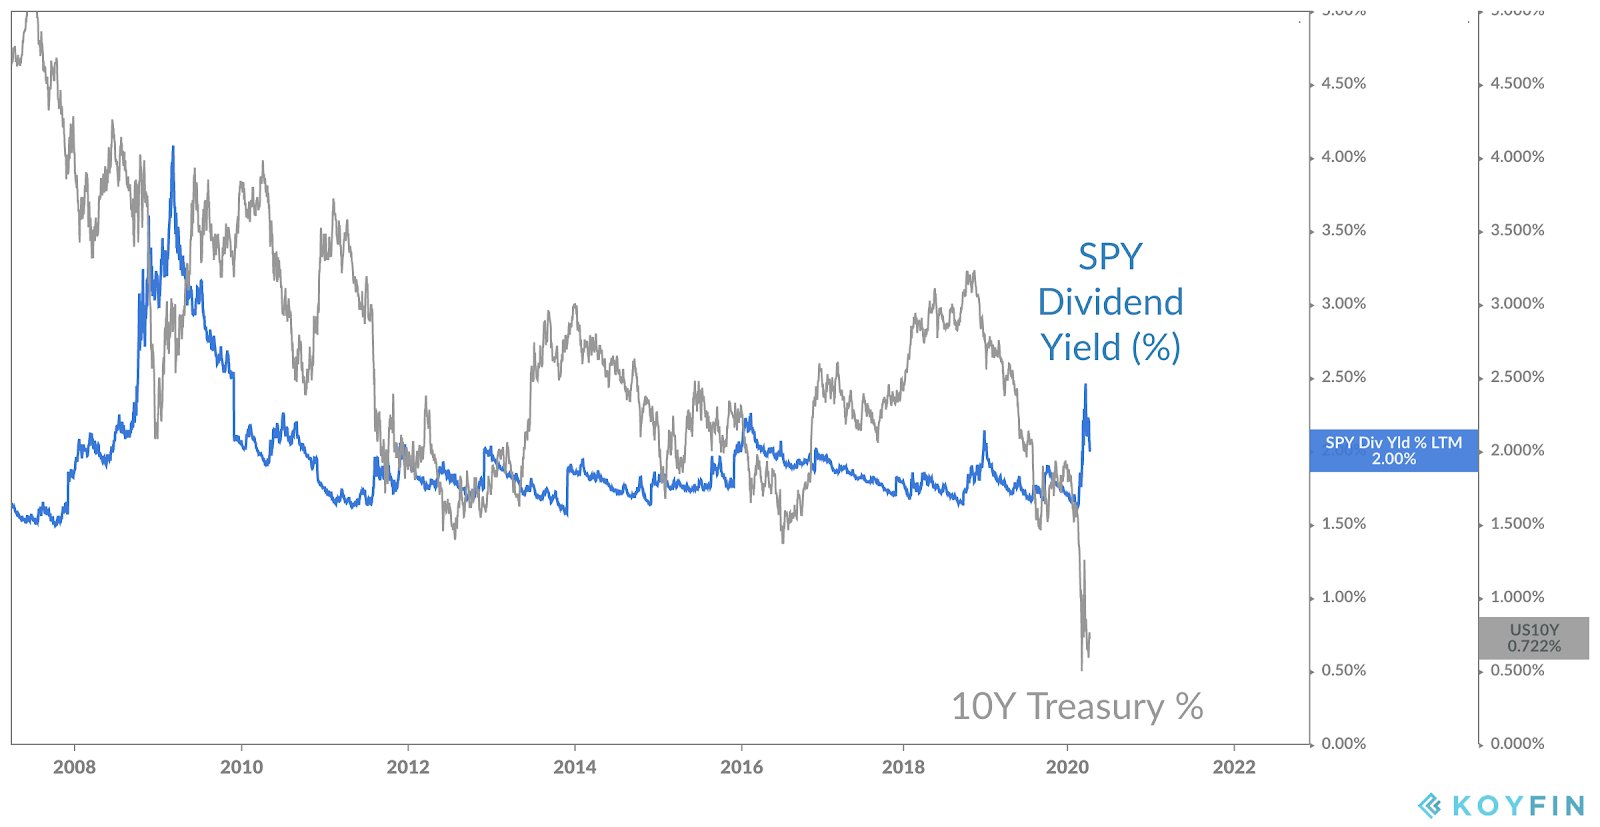 S&P 500 SPX dividend yield is higher than 10-year treasury yield